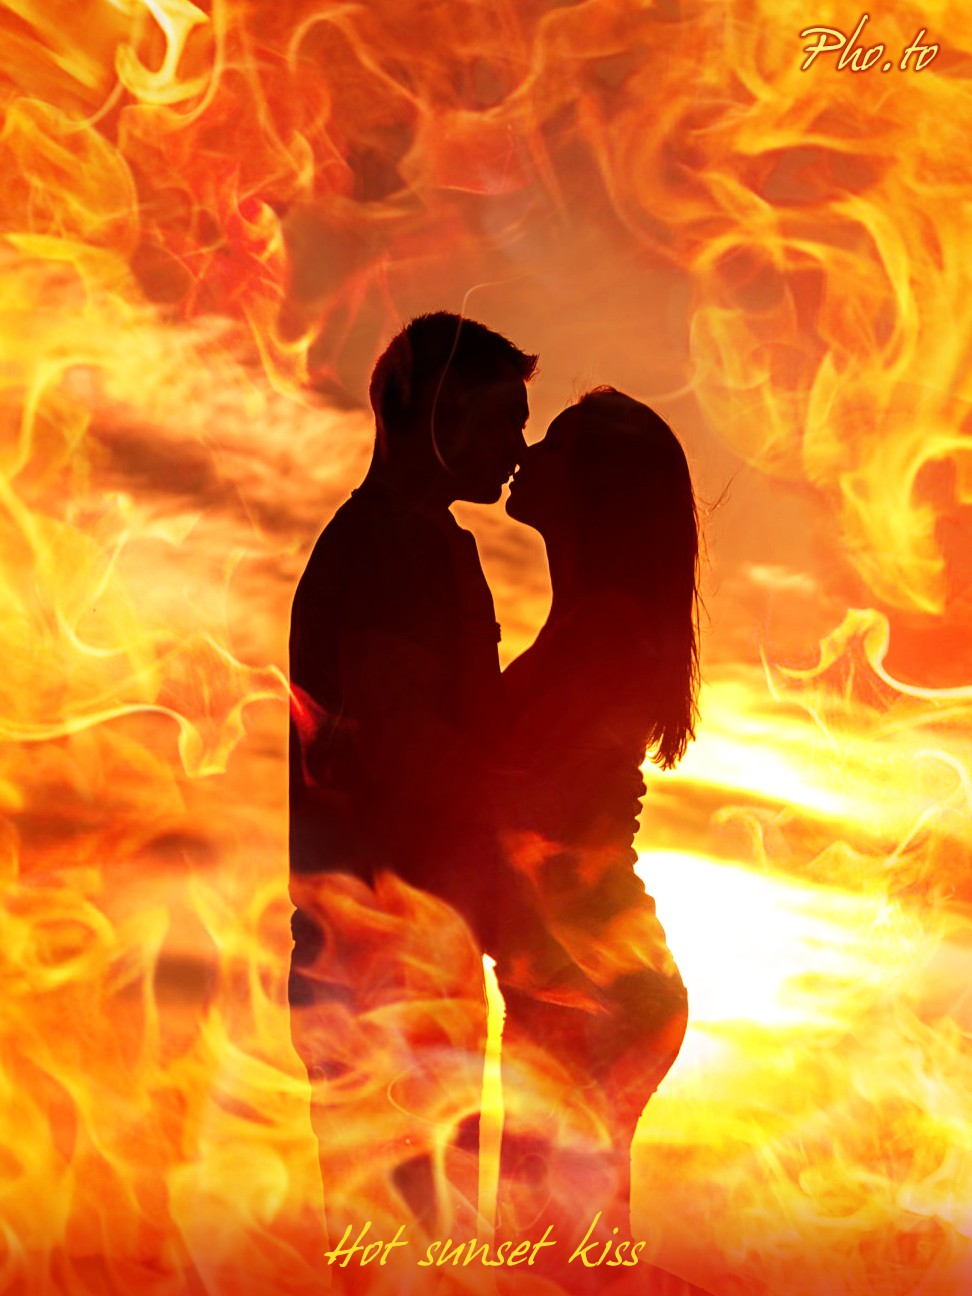 Emphasize inner passion of your romantic photo adding it a touch of fire